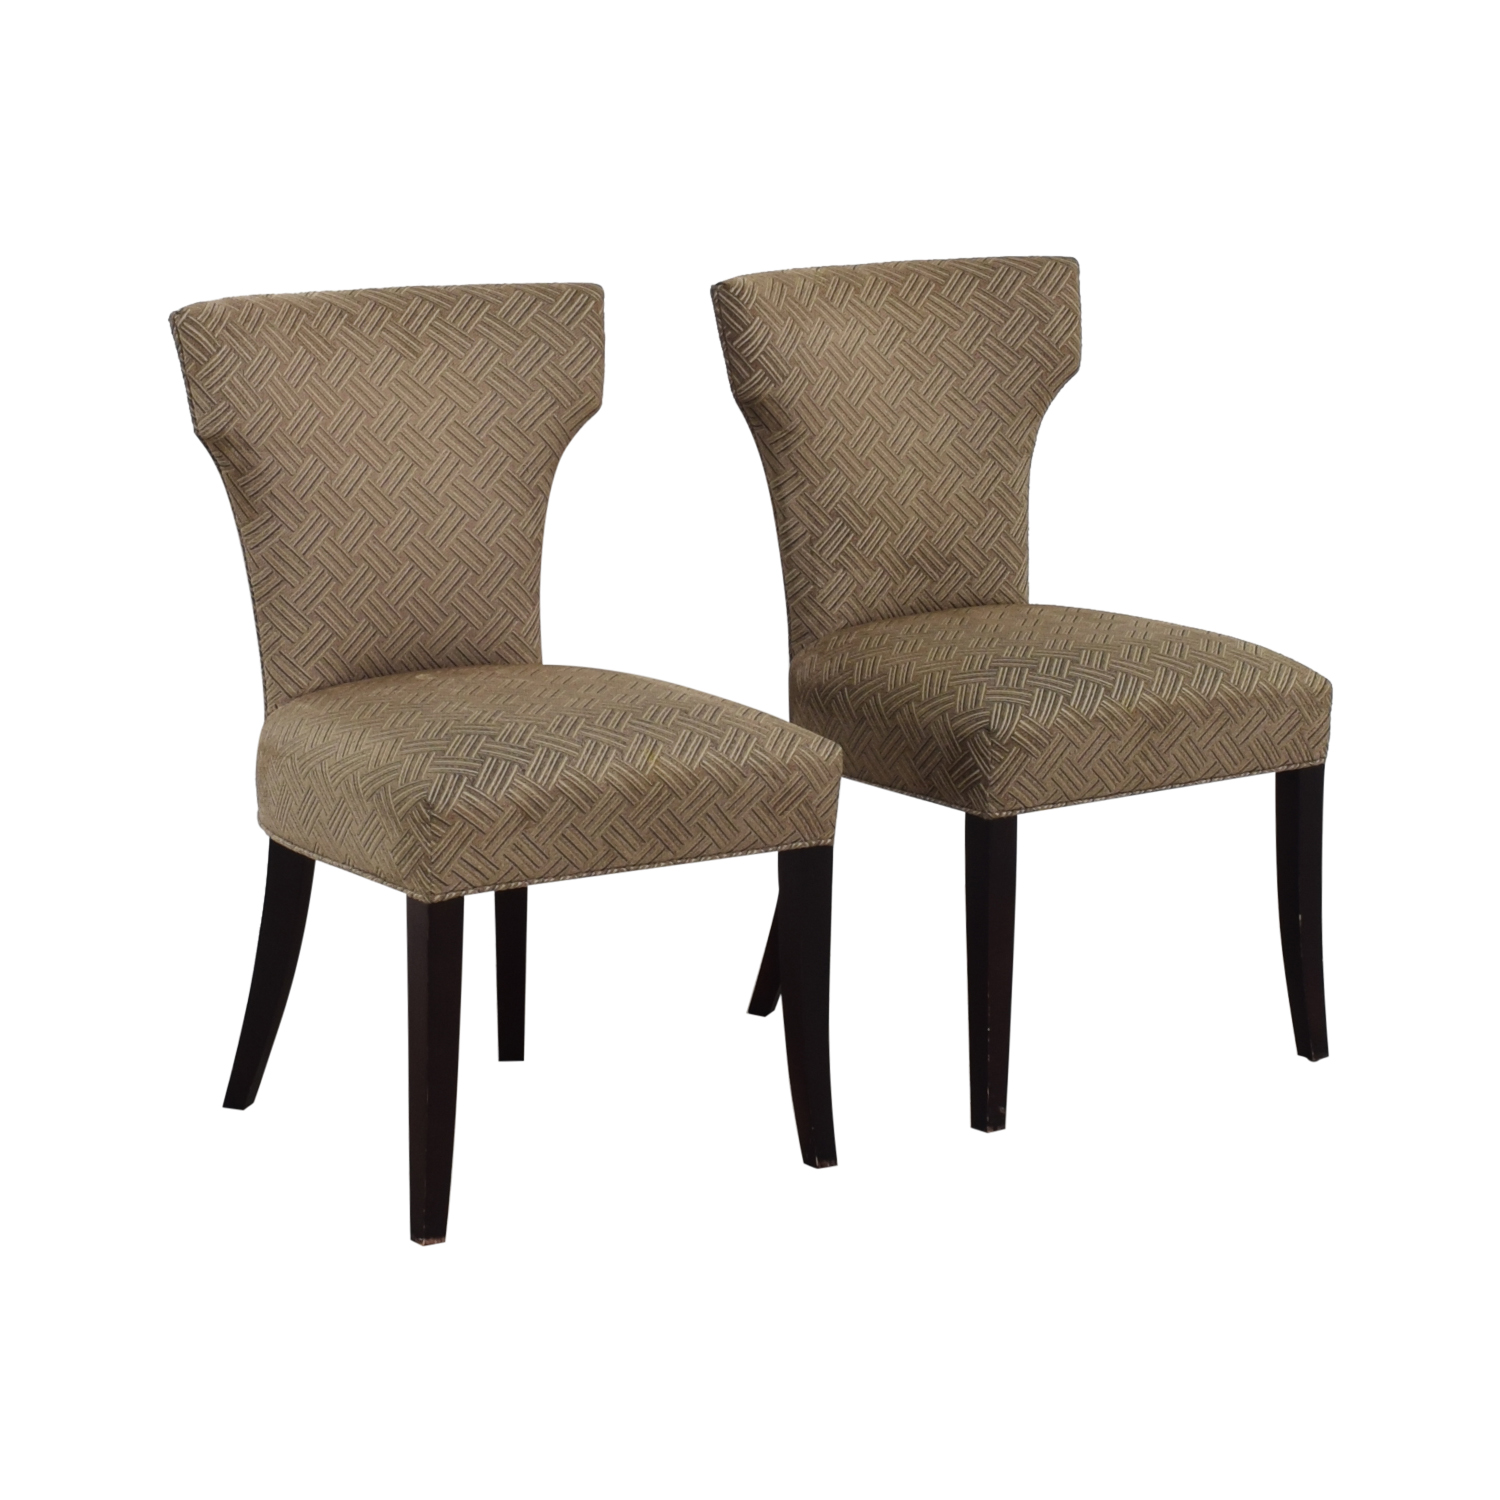 Crate & Barrel Crate & Barrel Sasha Upholstered Dining Chairs Chairs